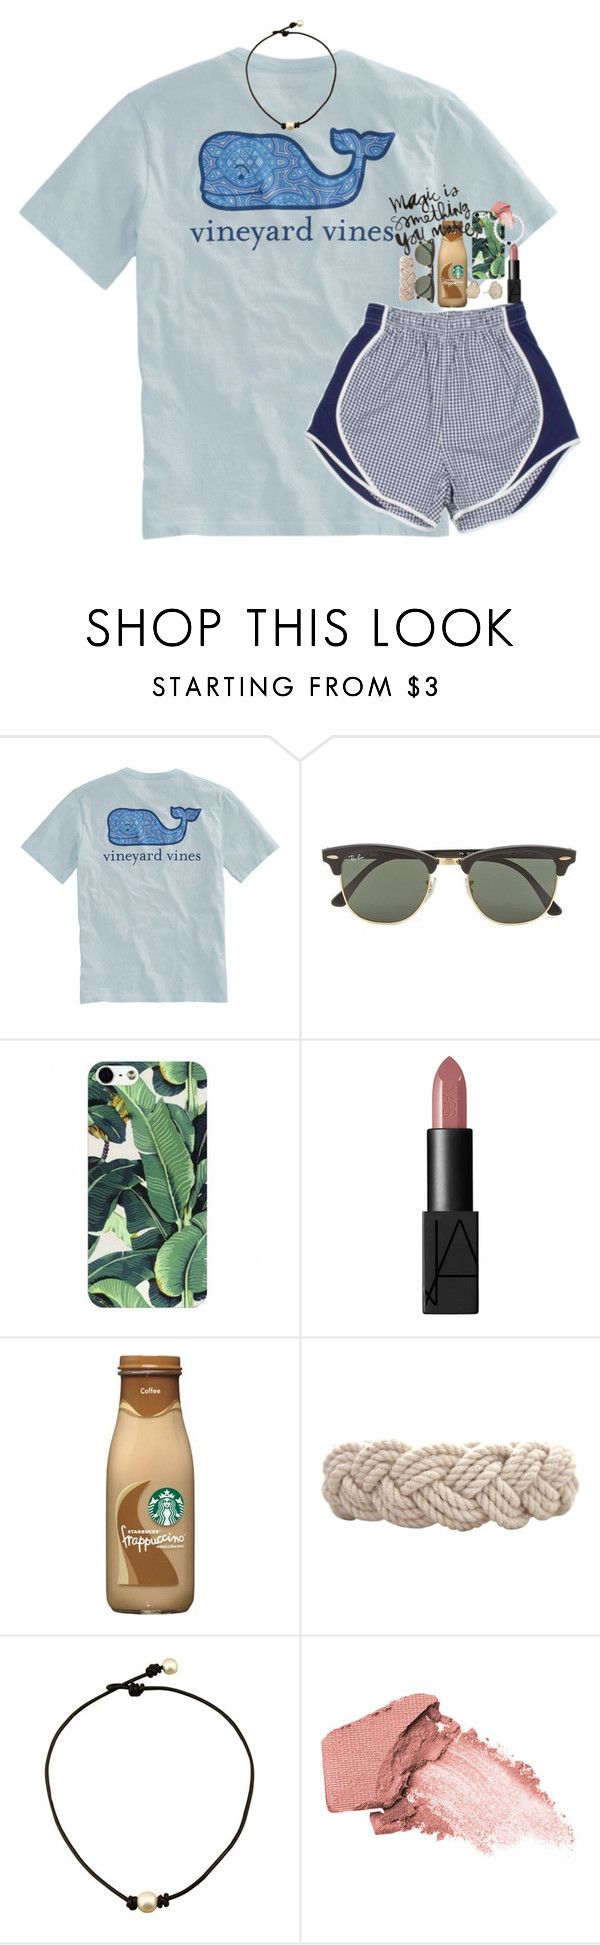 """""""je vous ai choisis"""" by classynsouthern ❤ liked on Polyvore featuring Vineyard Vines, Ray-Ban, NARS Cosmetics, Swell, Urban Decay and Kendra Scott"""